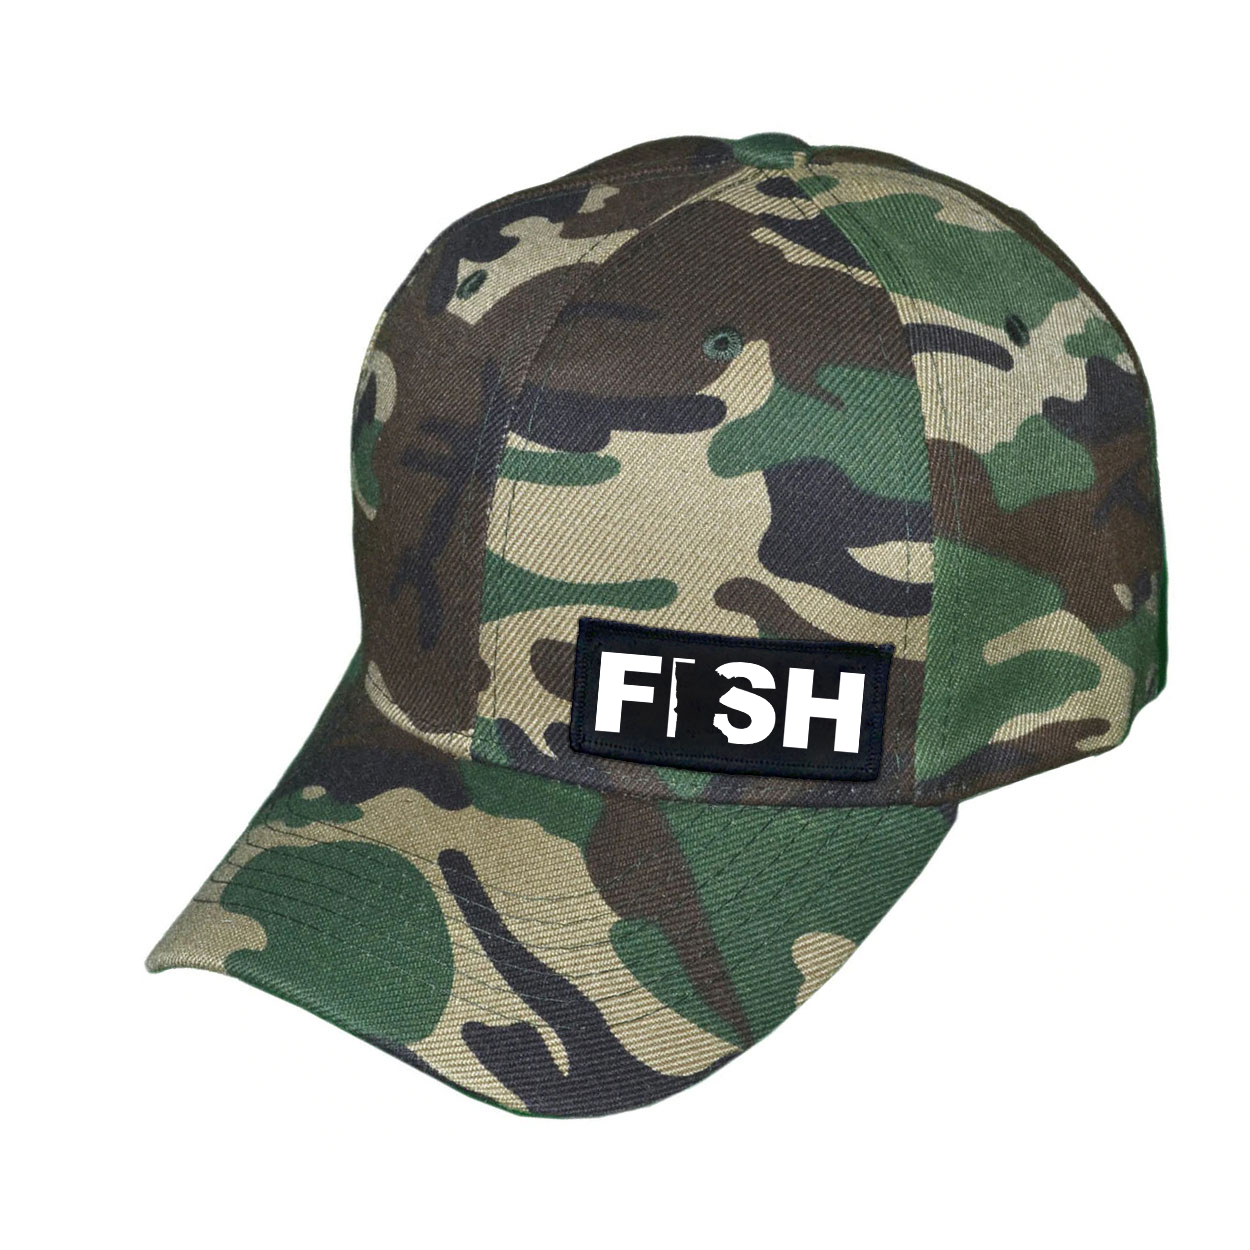 Fish Minnesota Night Out Woven Patch Hat Camo (White Logo)